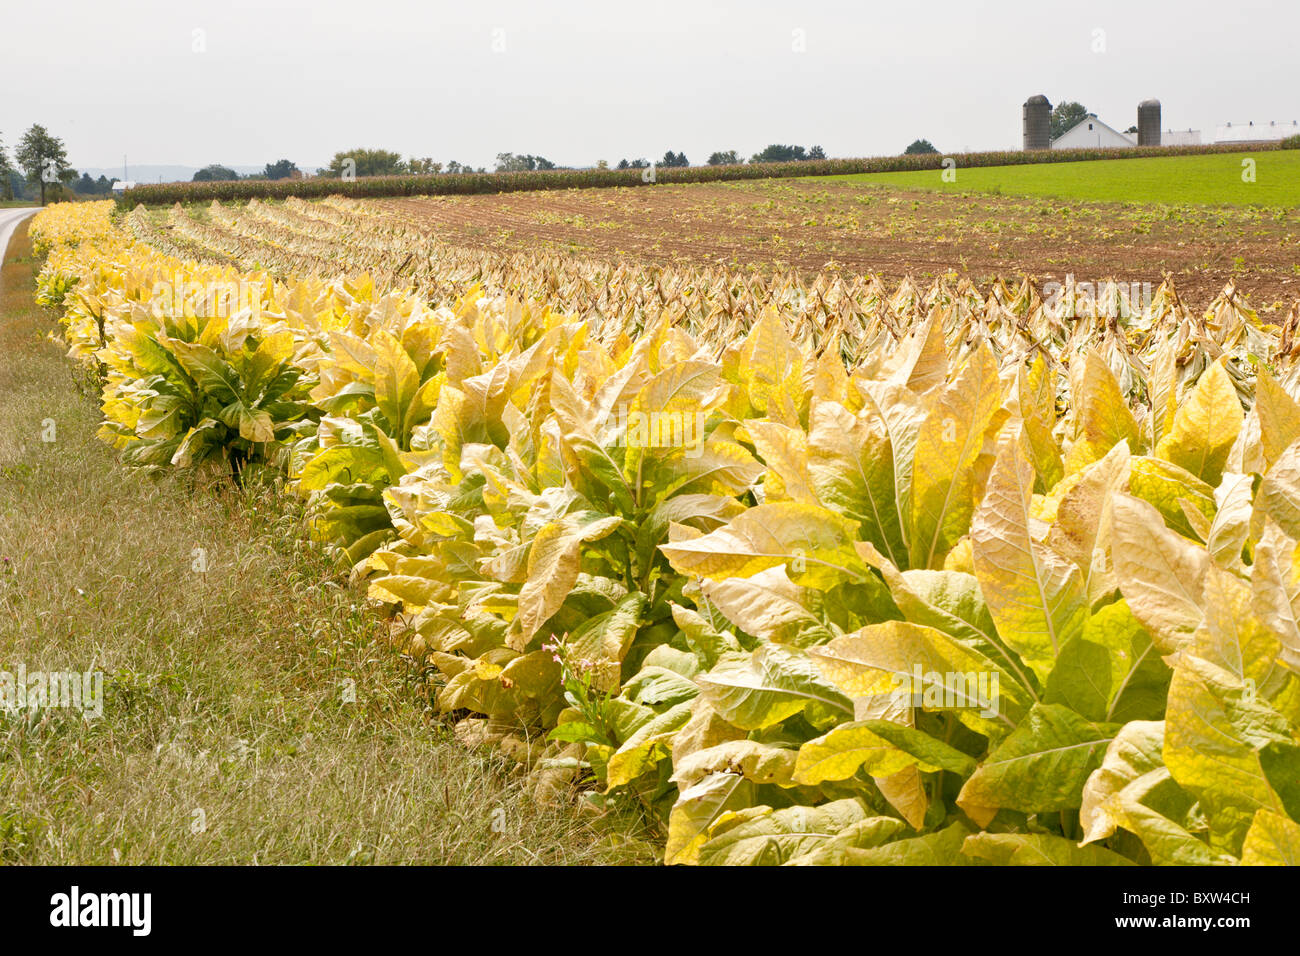 Tobacco in fields during harvest in Lancaster County, Pennsylvania - Stock Image